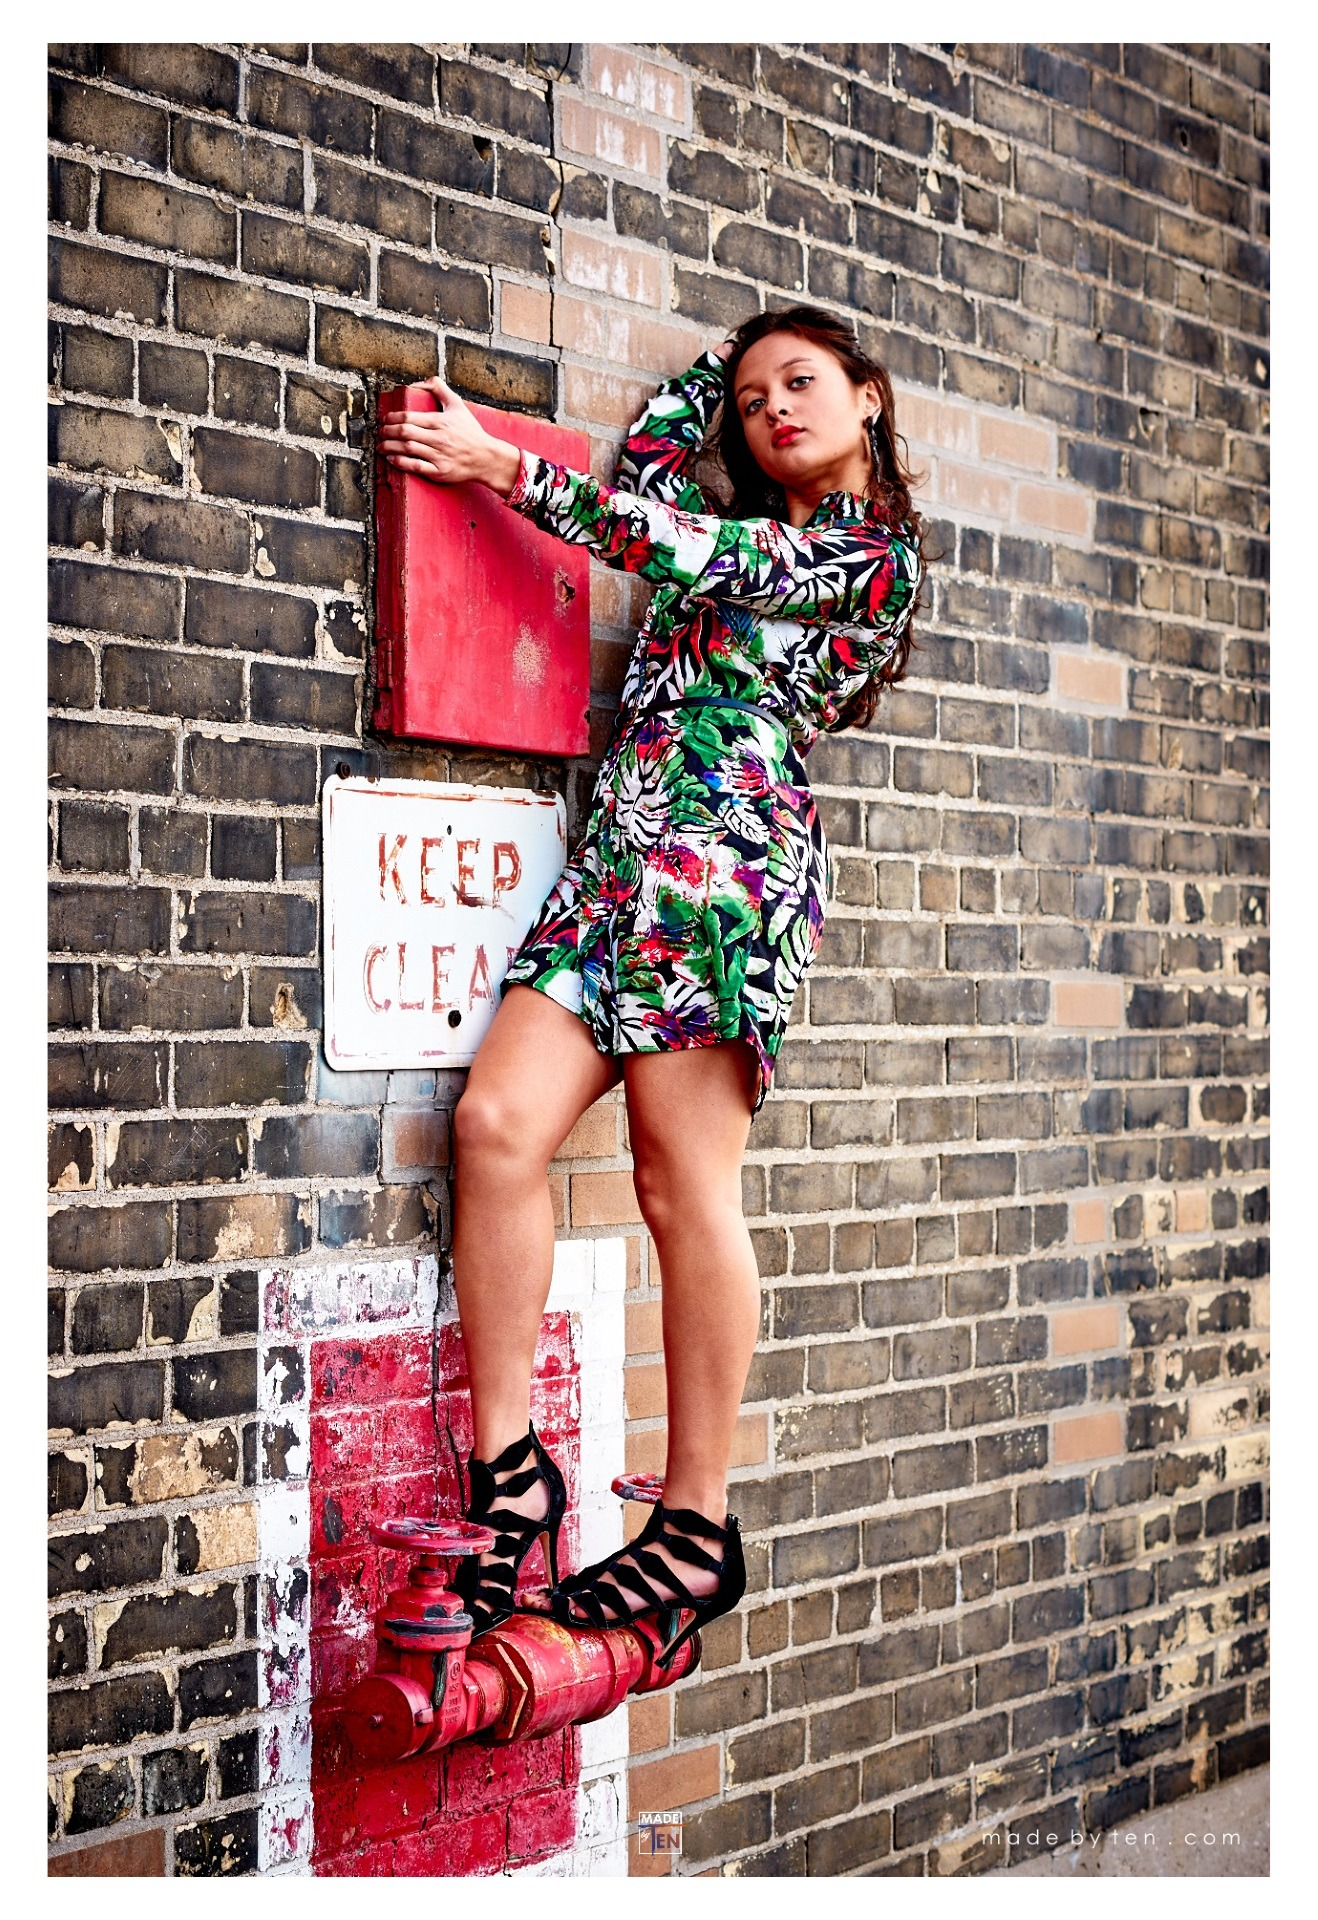 Commercial Women's Fashion Photography for Businesses ...